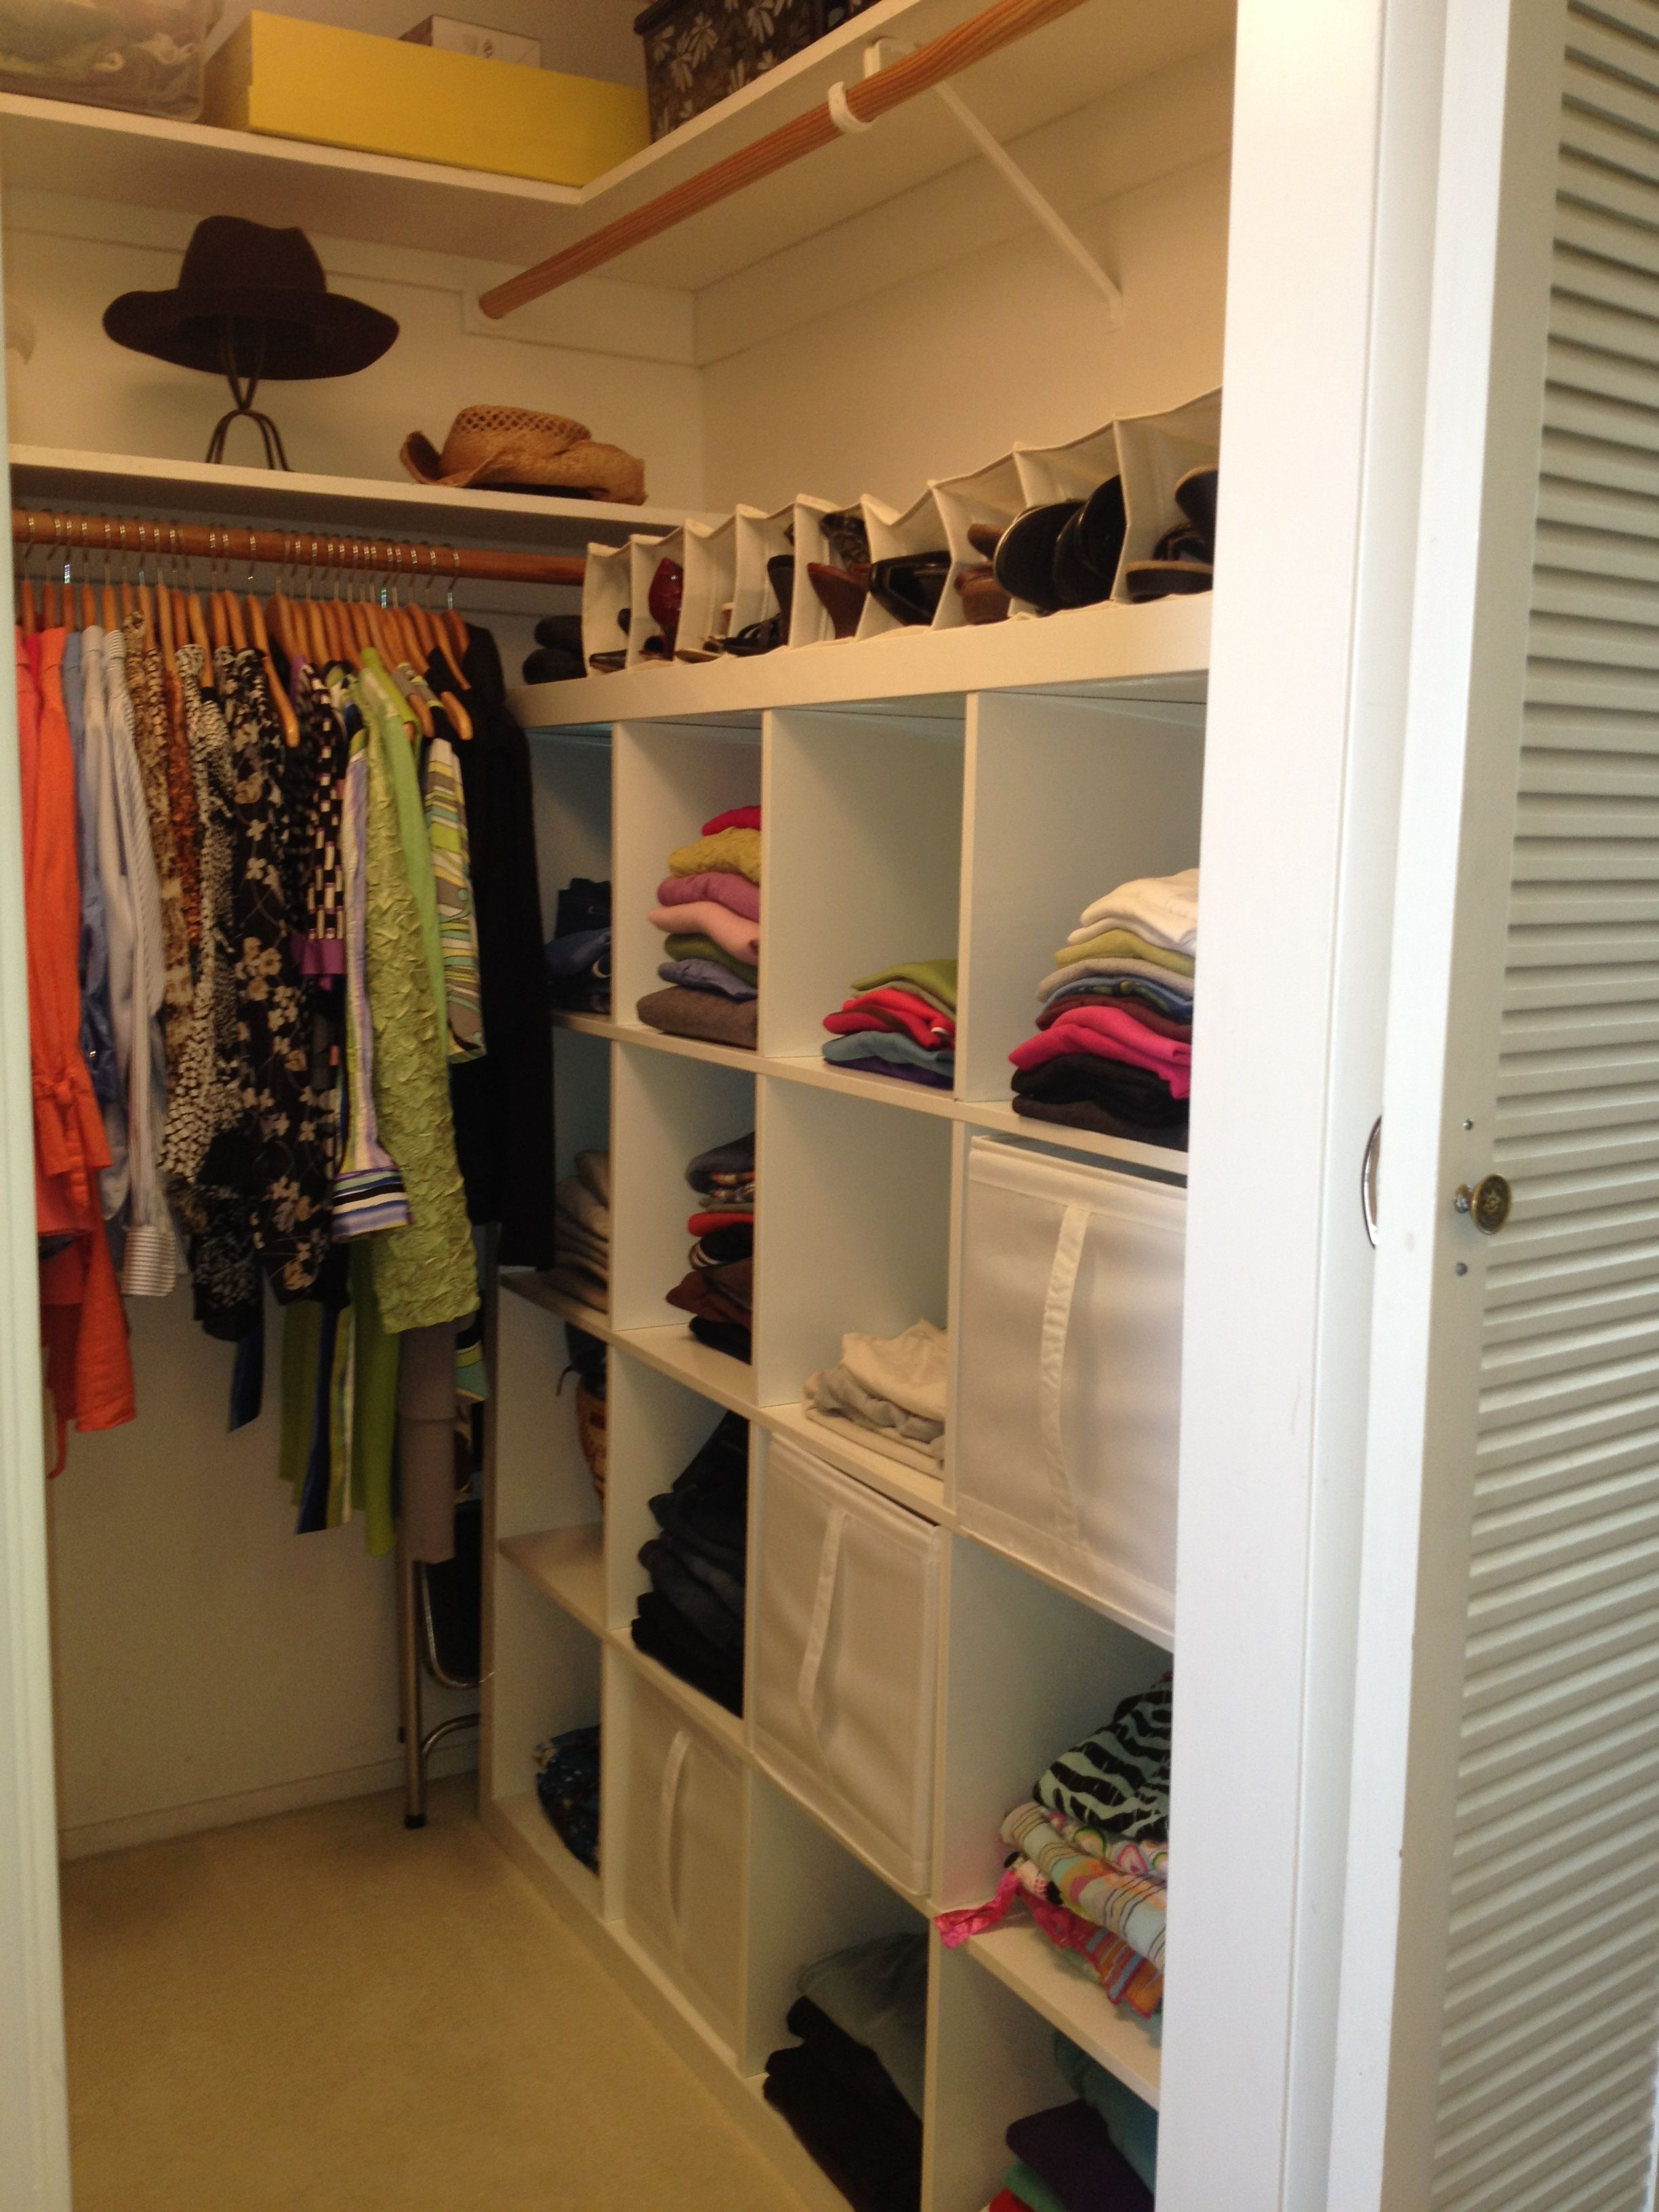 I Like This 21 Small Walk In Closet Ideas And Organizer